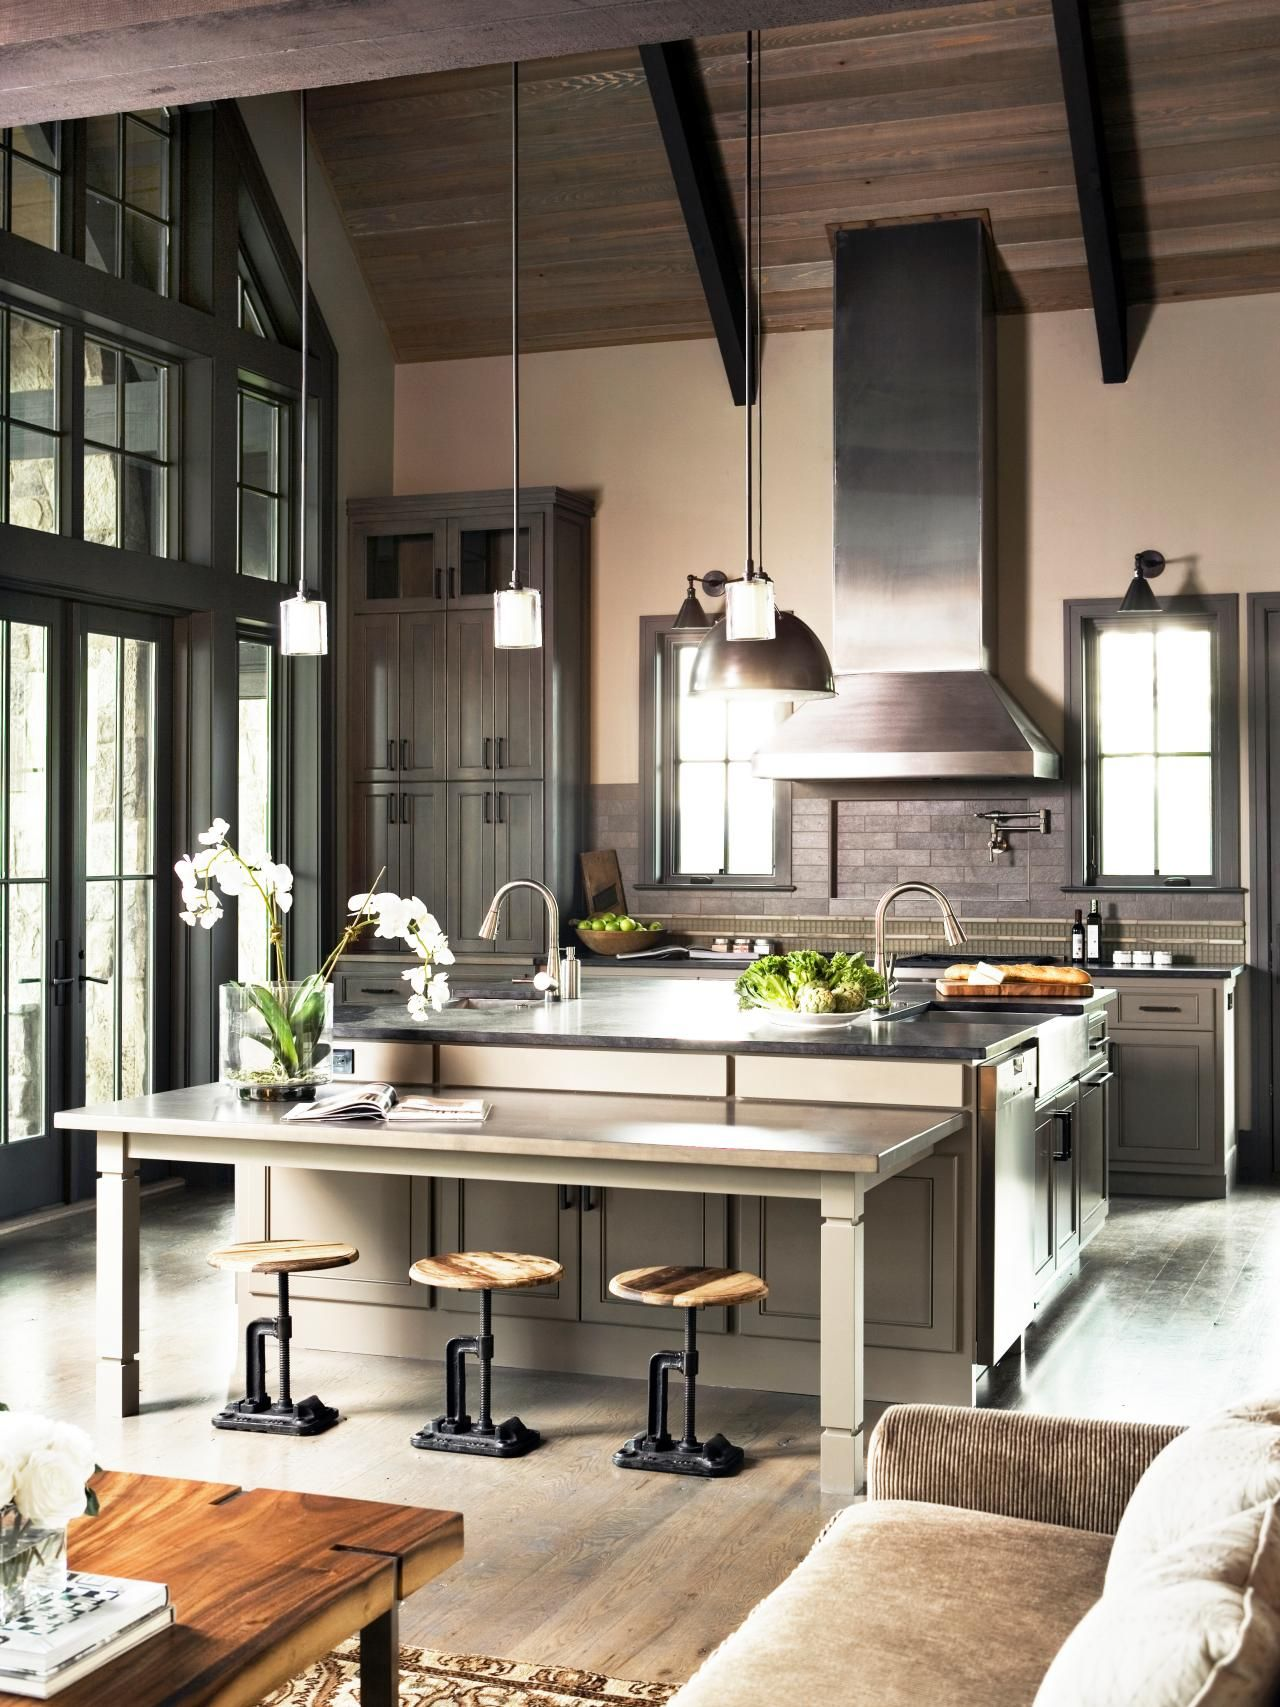 Kitchen Ideas Design Styles And Layout Options Espa O Gourmet